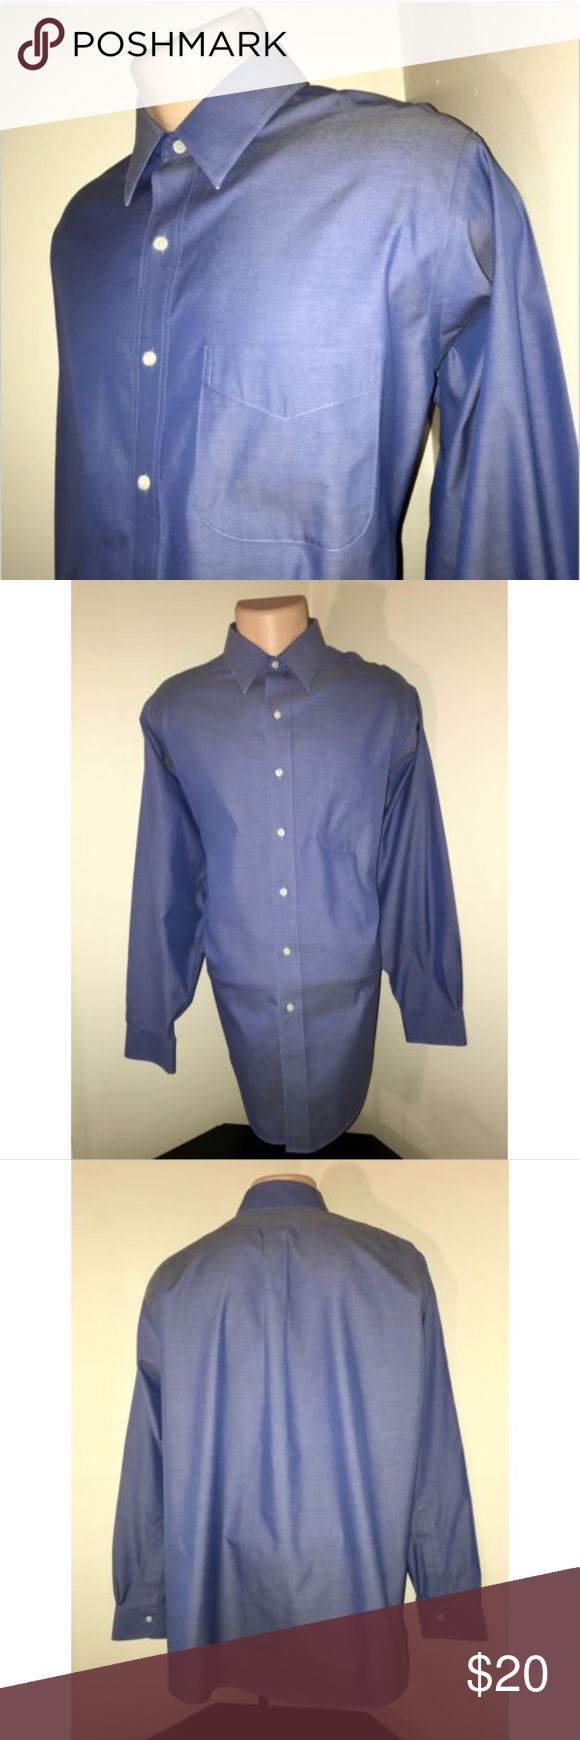 Brooks Brothers Oxford Blue Non Iron Dress Shirt PLEASE NOTE MEASUREMENTS BELOW TO ENSURE PROPER FIT  Size: 16 1/2 - 34 Color: Blue Tag Measurements- 16 1/2 - 34 Material: 100% Cotton Condition: Great Features: Long Sleeve, Comfortable and lightweight, Spread collar, Standard Cuffs, Front left breast pocket Flaws: The tips of the spread collar show little wear. Please refer to photo.   Measurements:  Chest - 26 inches  Shoulder - 19 inches  Sleeve - 24.5 inches  Length - 33 inches Brooks…